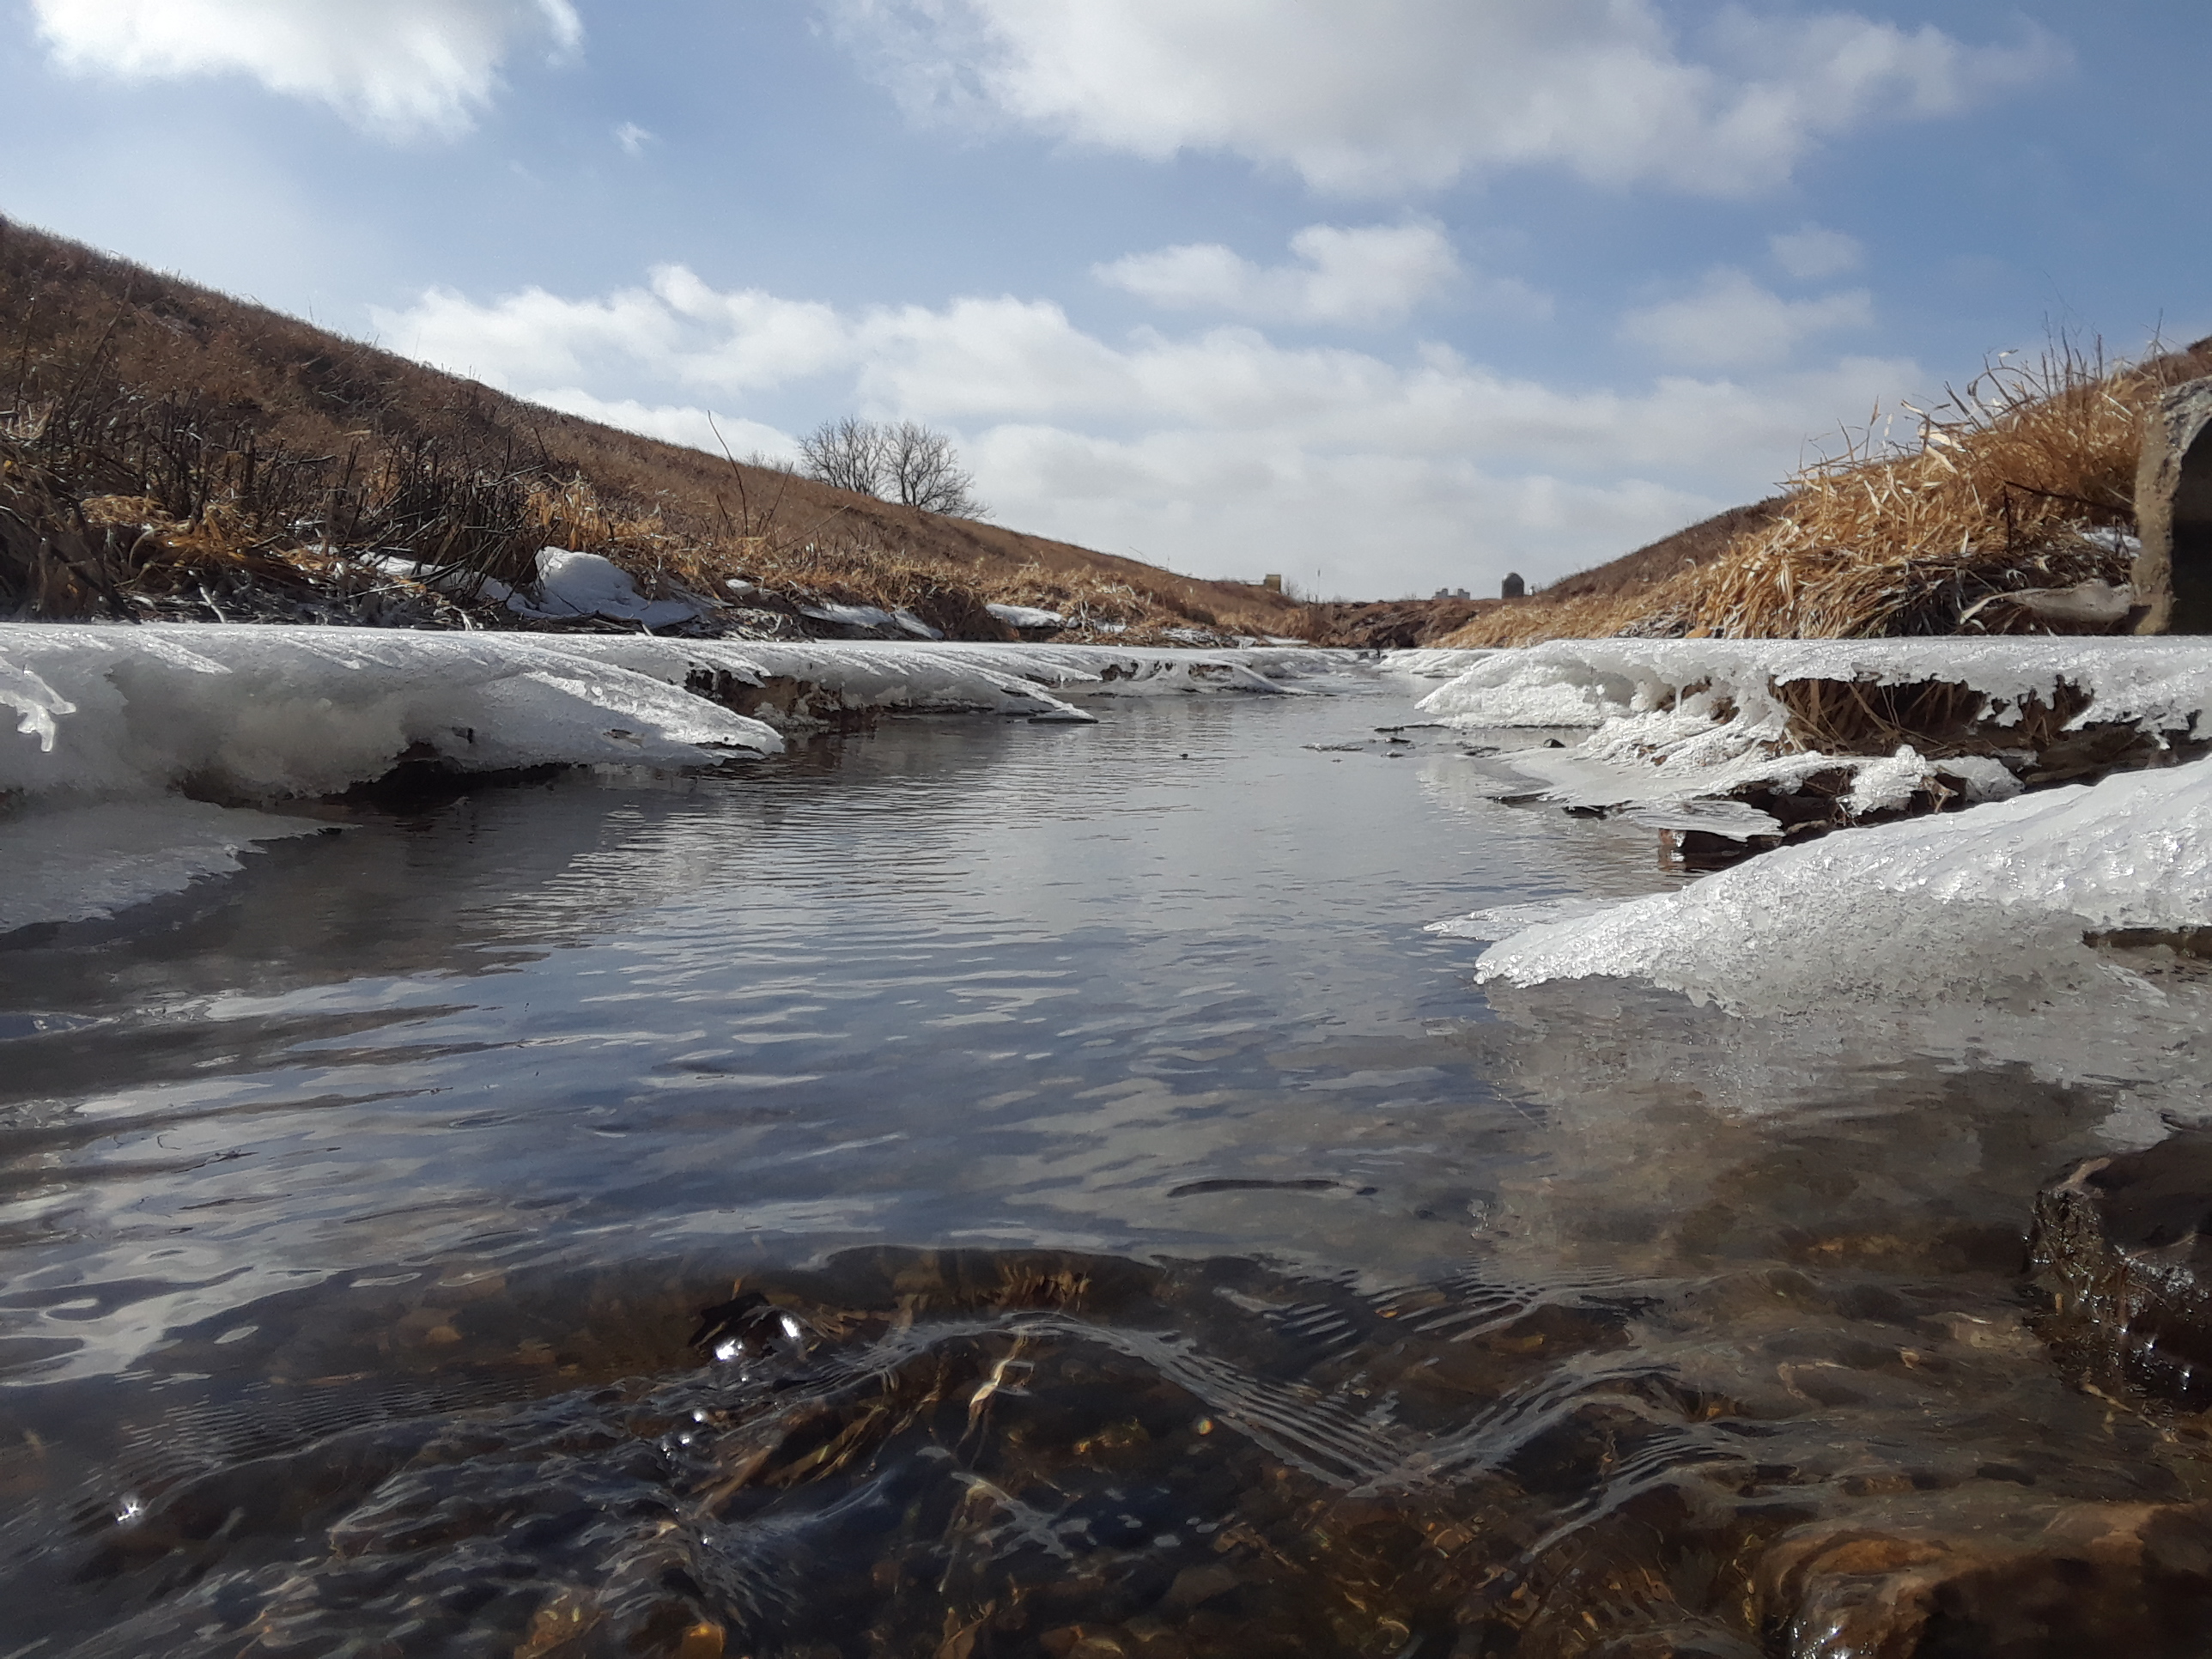 (2/2) The ice shelves curve toward the creek in the direction of the flowing water. nature, landscape, water, ice, creek, snow, winter, sky Photo: Luciano Elementi